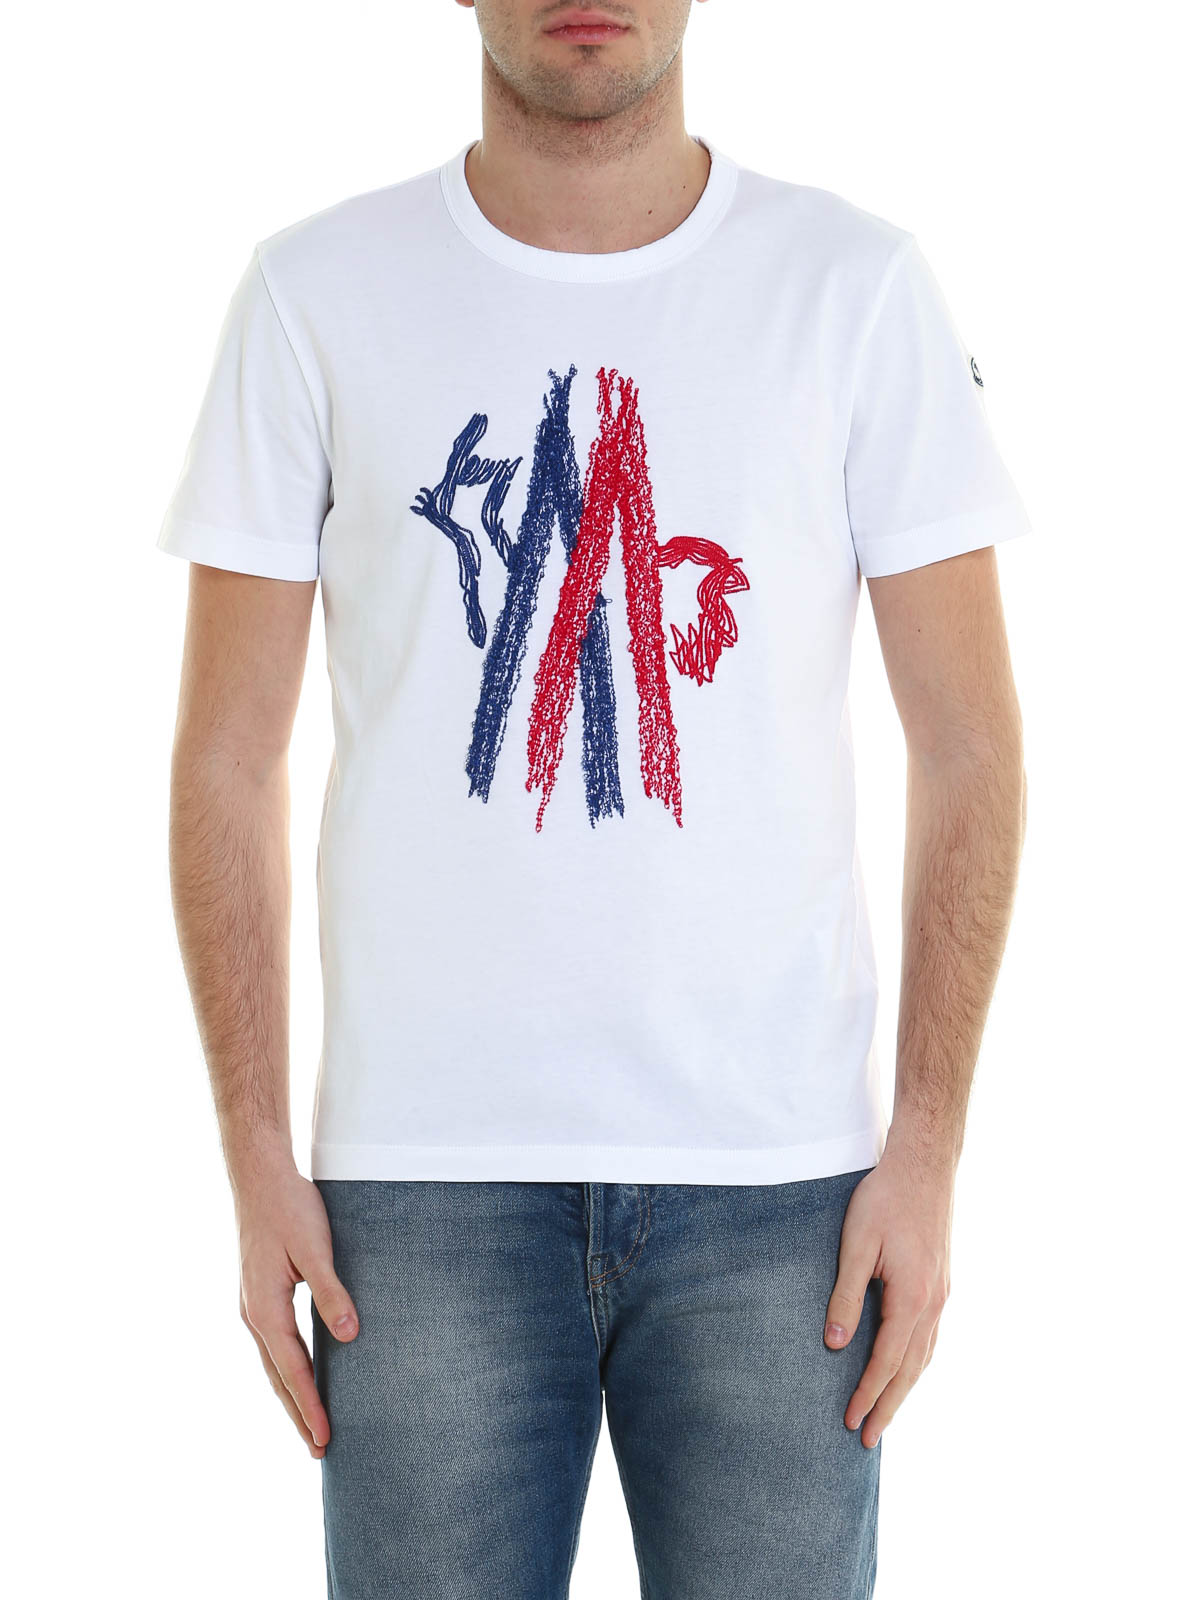 Embroidered cock logo t shirt by moncler t shirts shop for T shirt logo embroidery